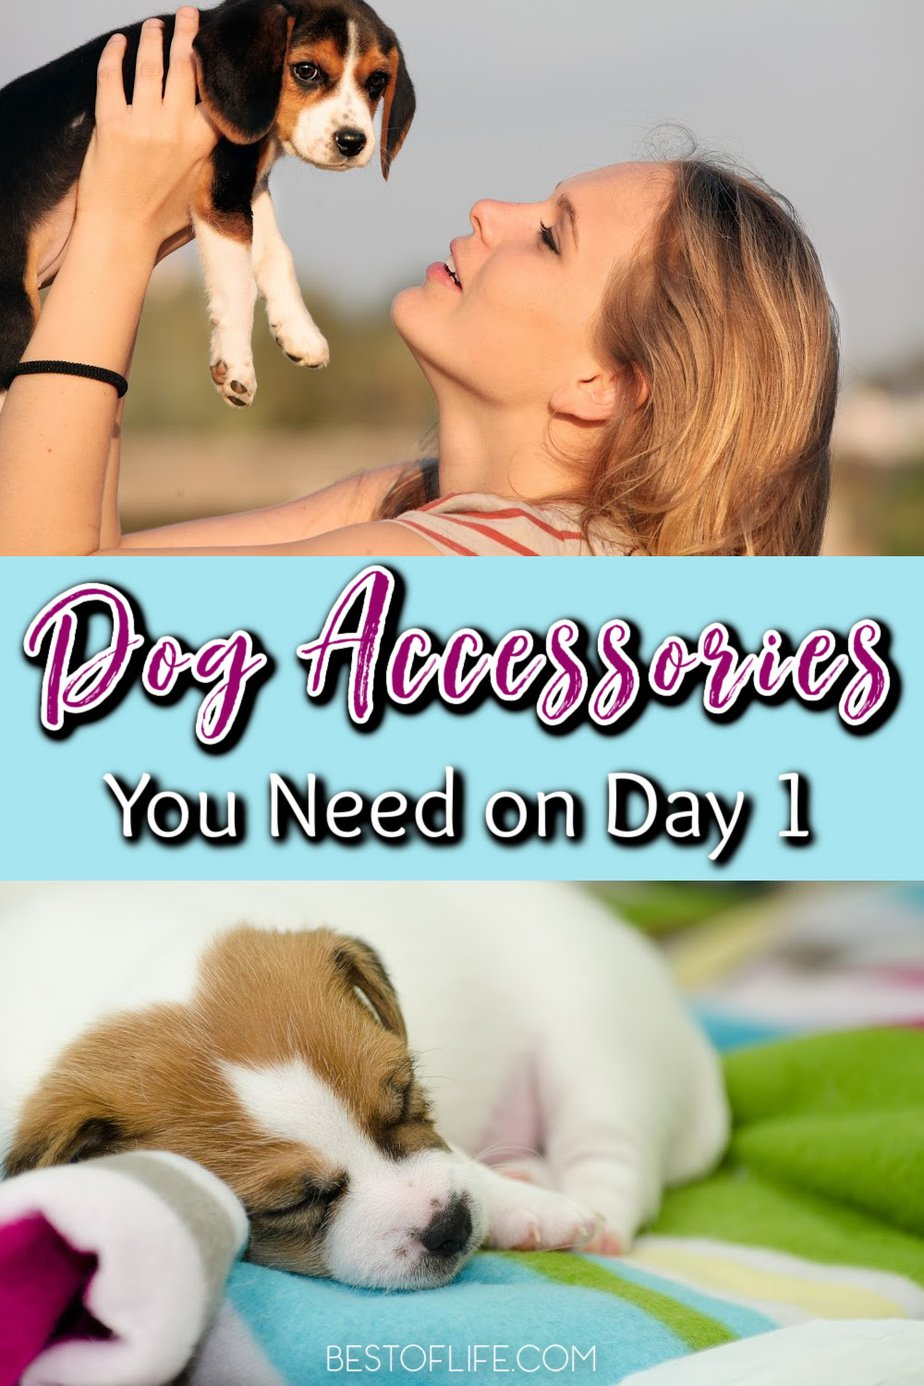 The best dog accessories you need on day 1 will make the transition easier for you and for your new dog as they join your family. Luxury Dog Accessories | Cute Dog Accessories | Dog Accessories Online | Must-Have Dog Accessories | Accessories for Pet Owners | Chew Toys for Puppies | Leashes for Puppies | Comfortable Dog Beds #dogs #petlovers via @thebestoflife